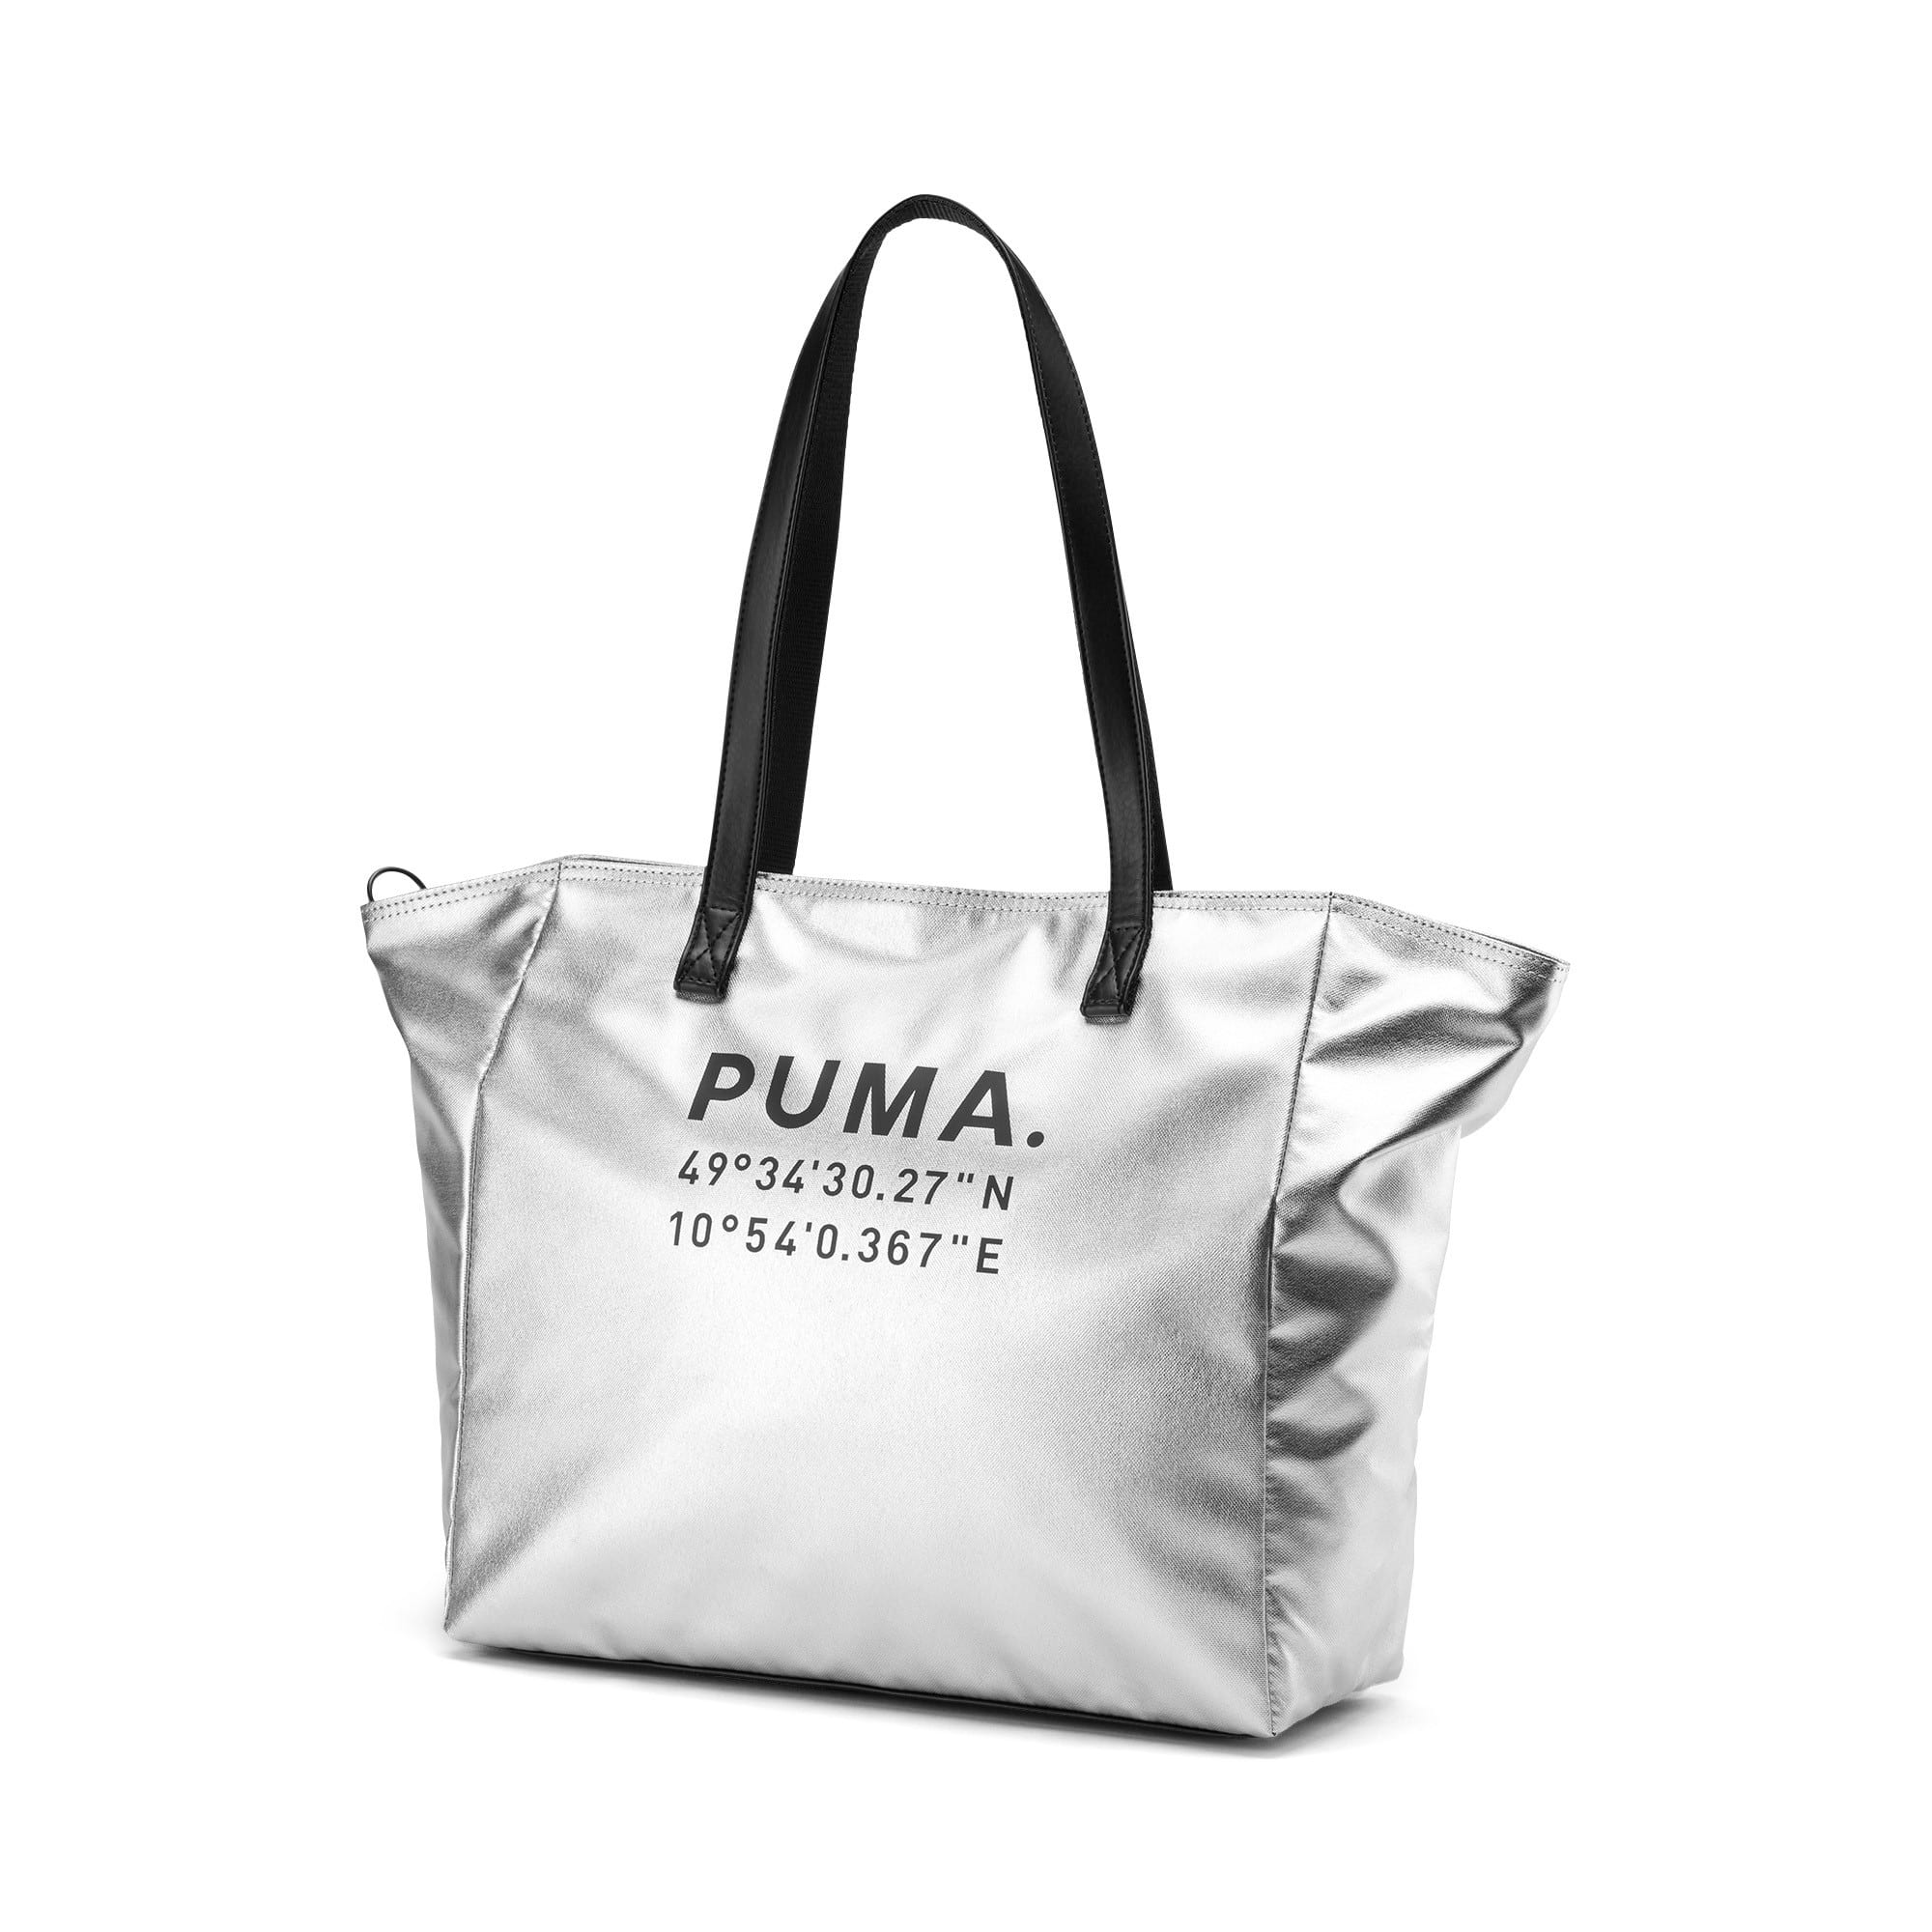 Thumbnail 1 of Time Women's Large Shopper, Silver-Puma Black, medium-IND